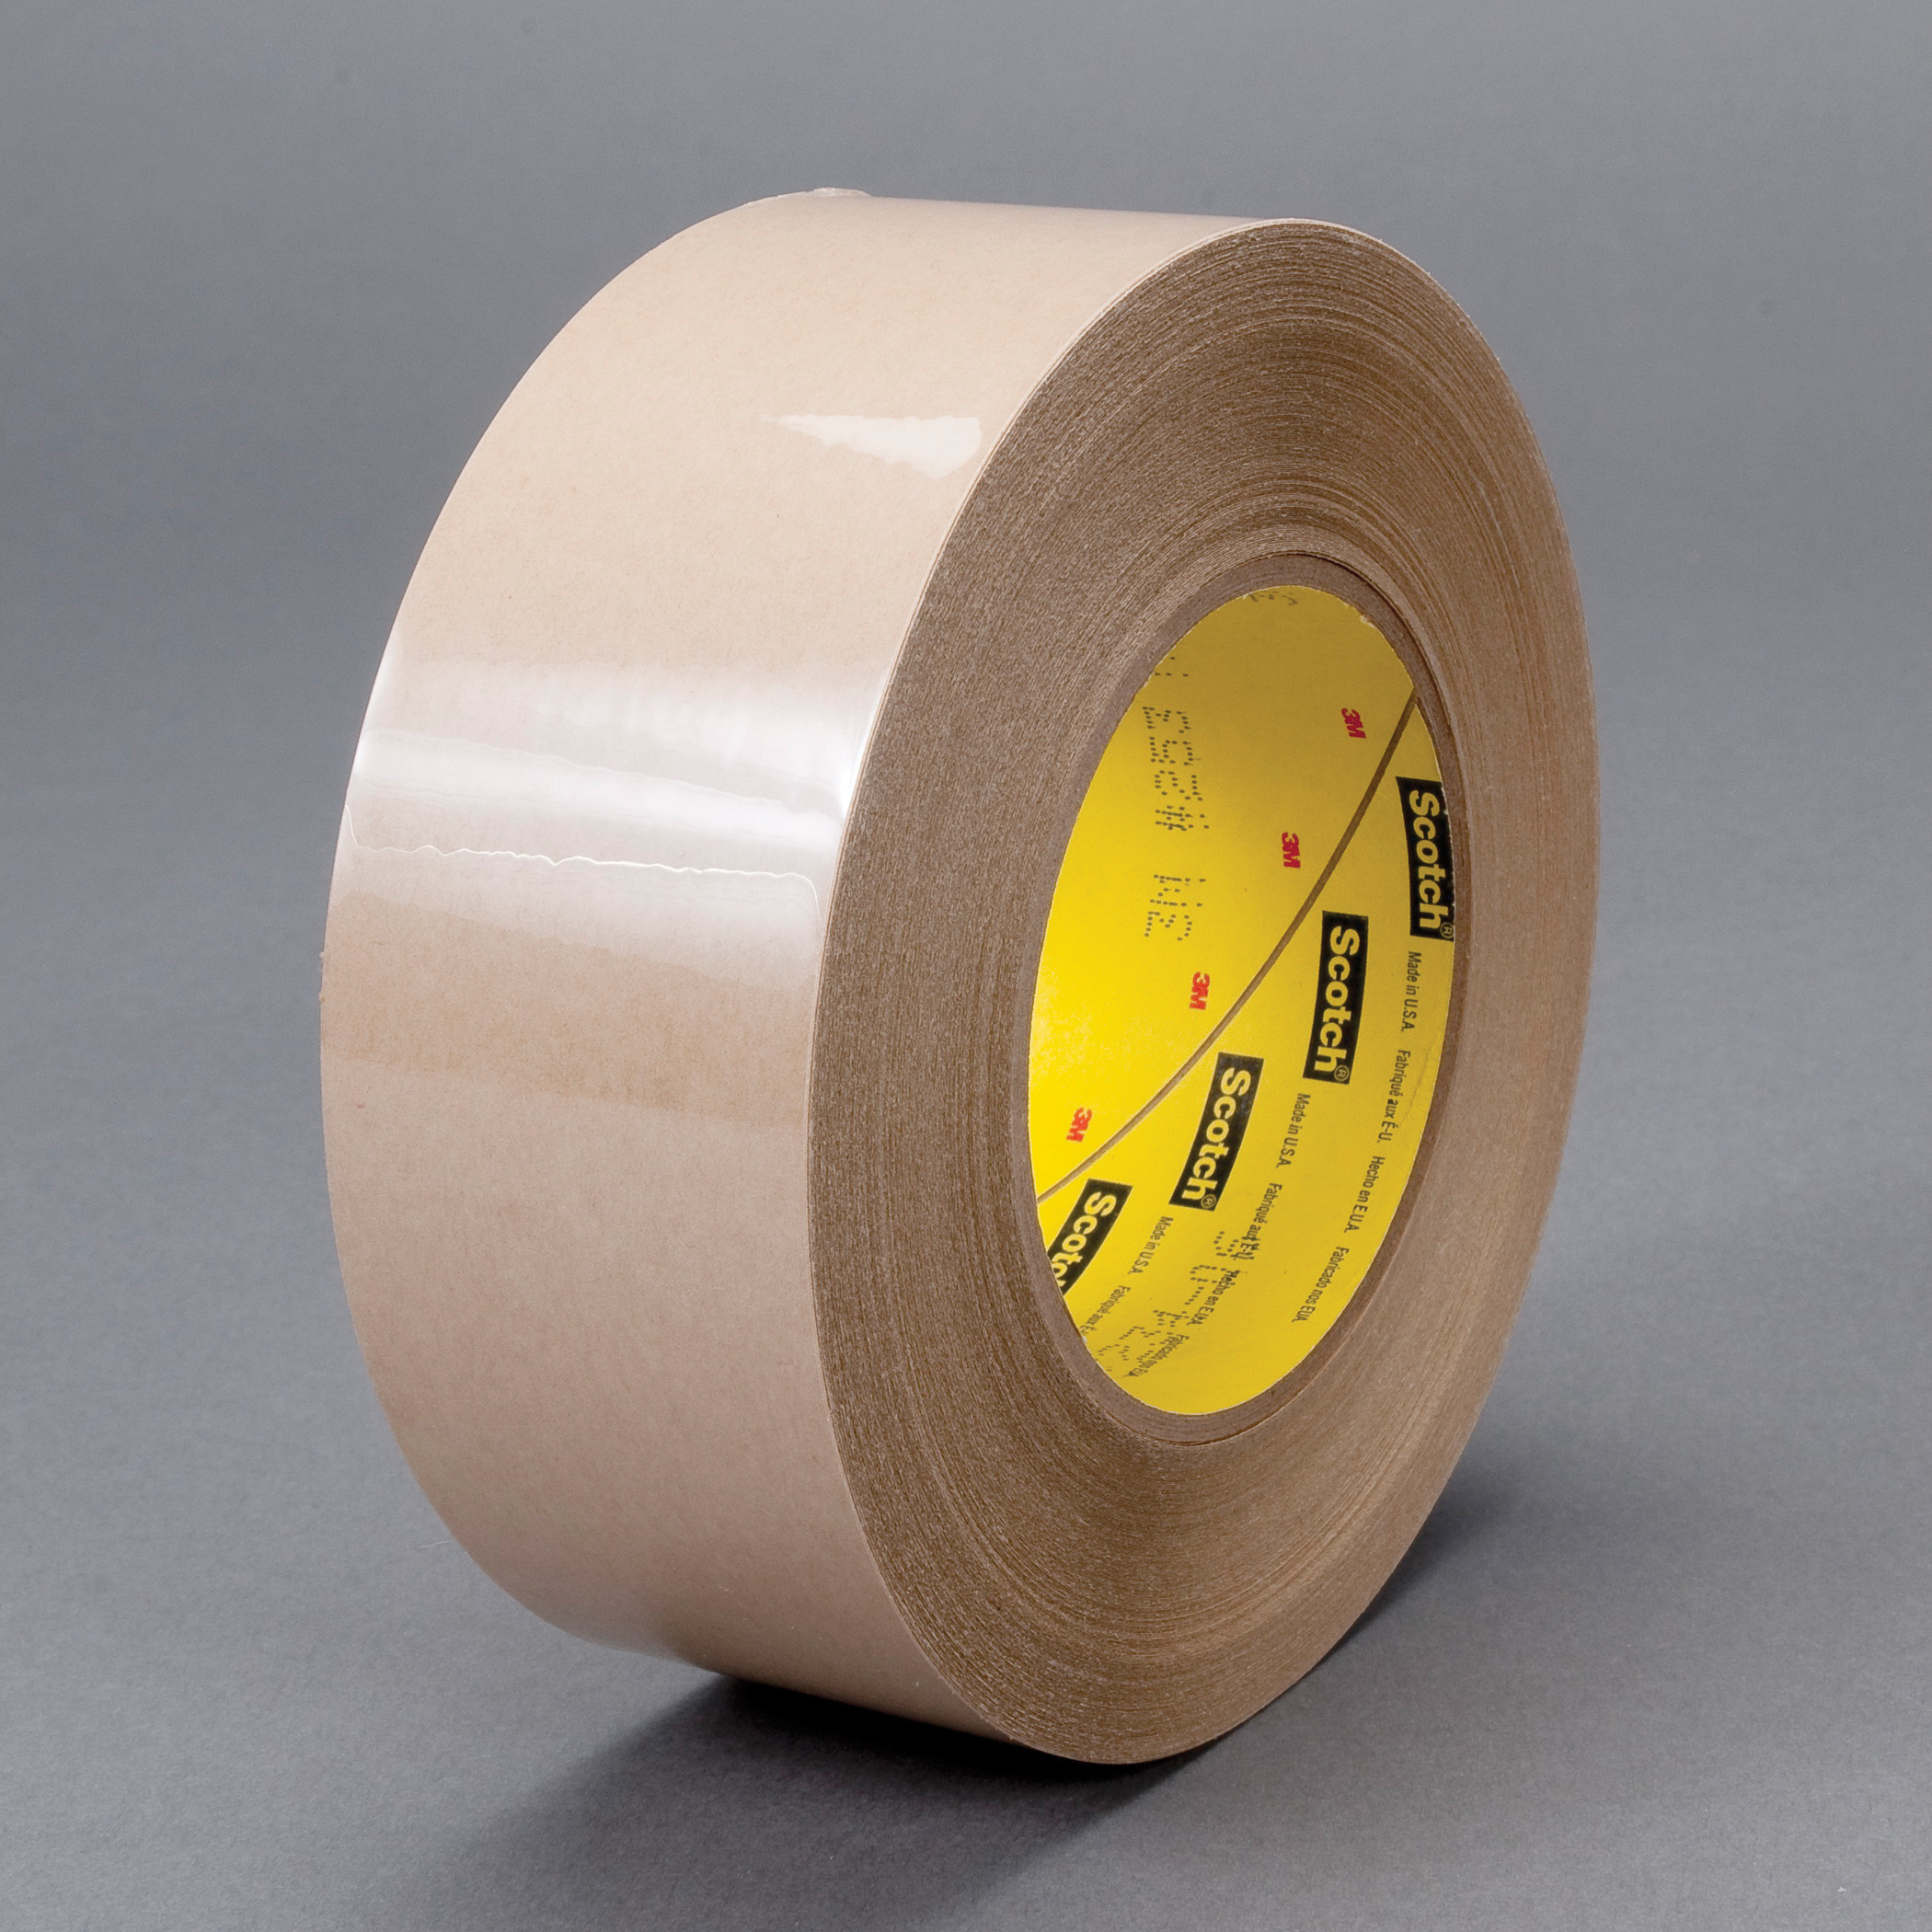 3M™ 021200-83874 Single Coated Splicing Tape, 60 yd L x 1 in W, 4.6 mil THK, Silicon Adhesive, Treated Flatstock Paper Backing, Tan